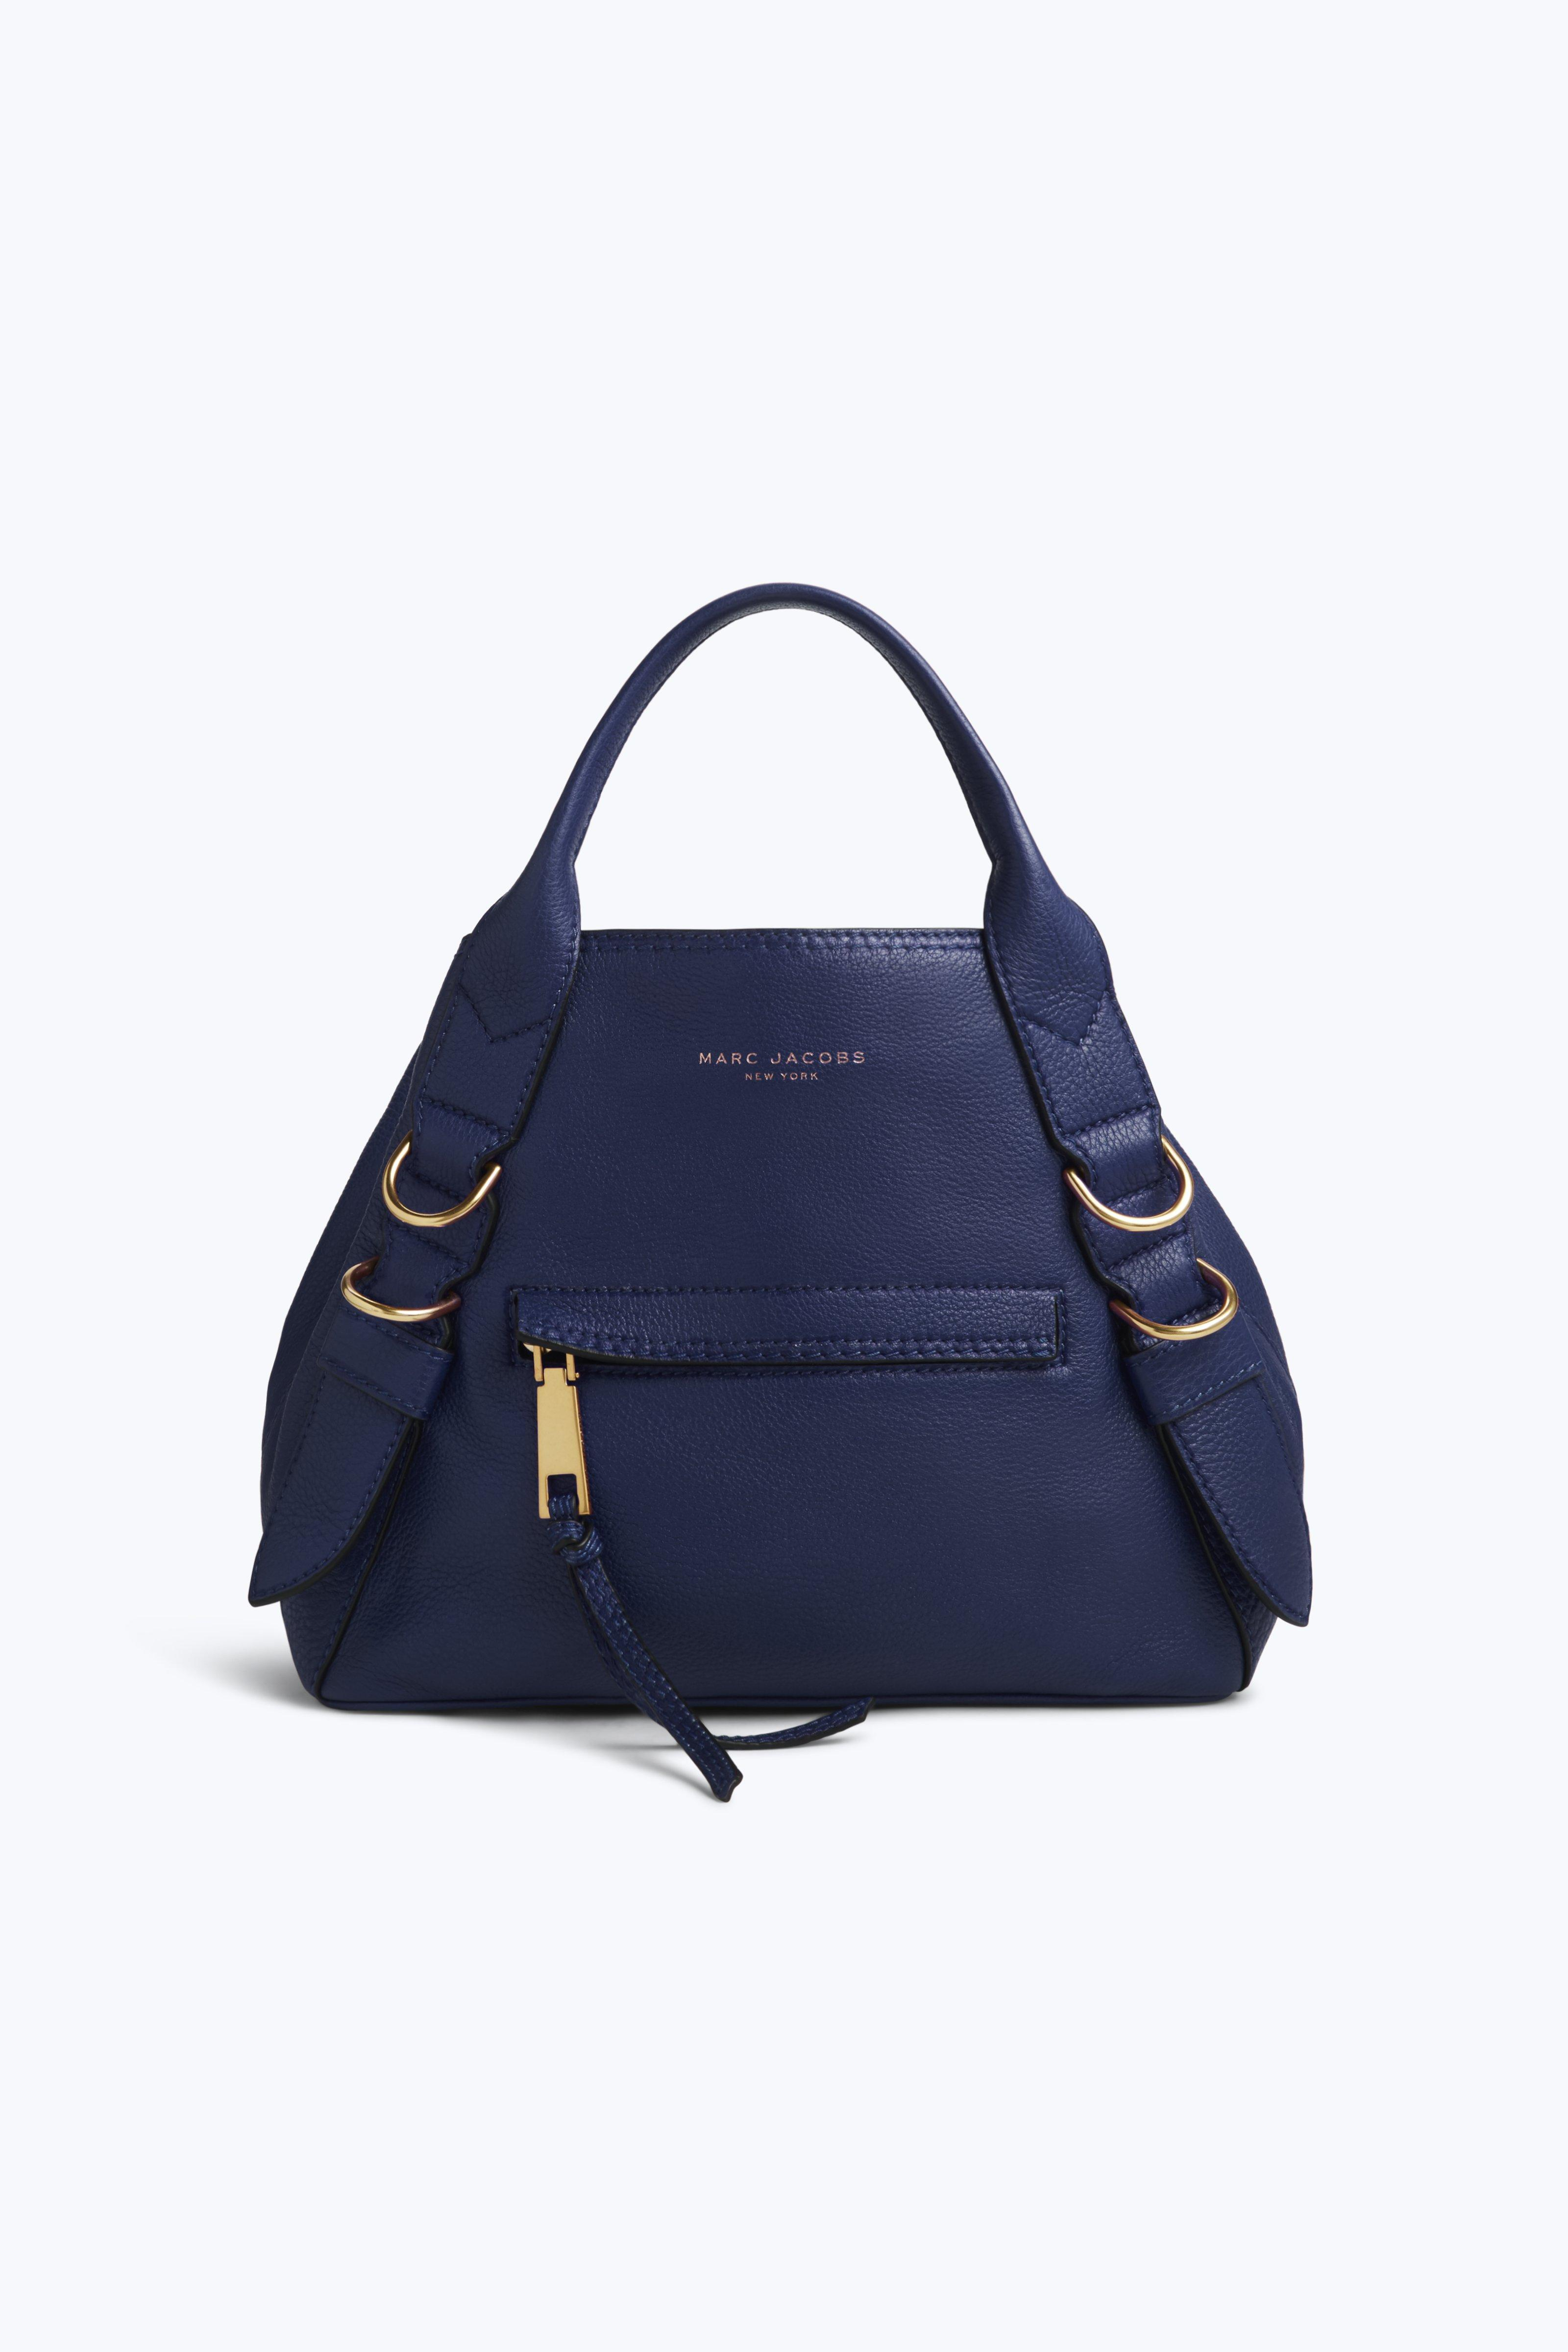 Marc Jacobs The Mini Anchor In Midnight Blue